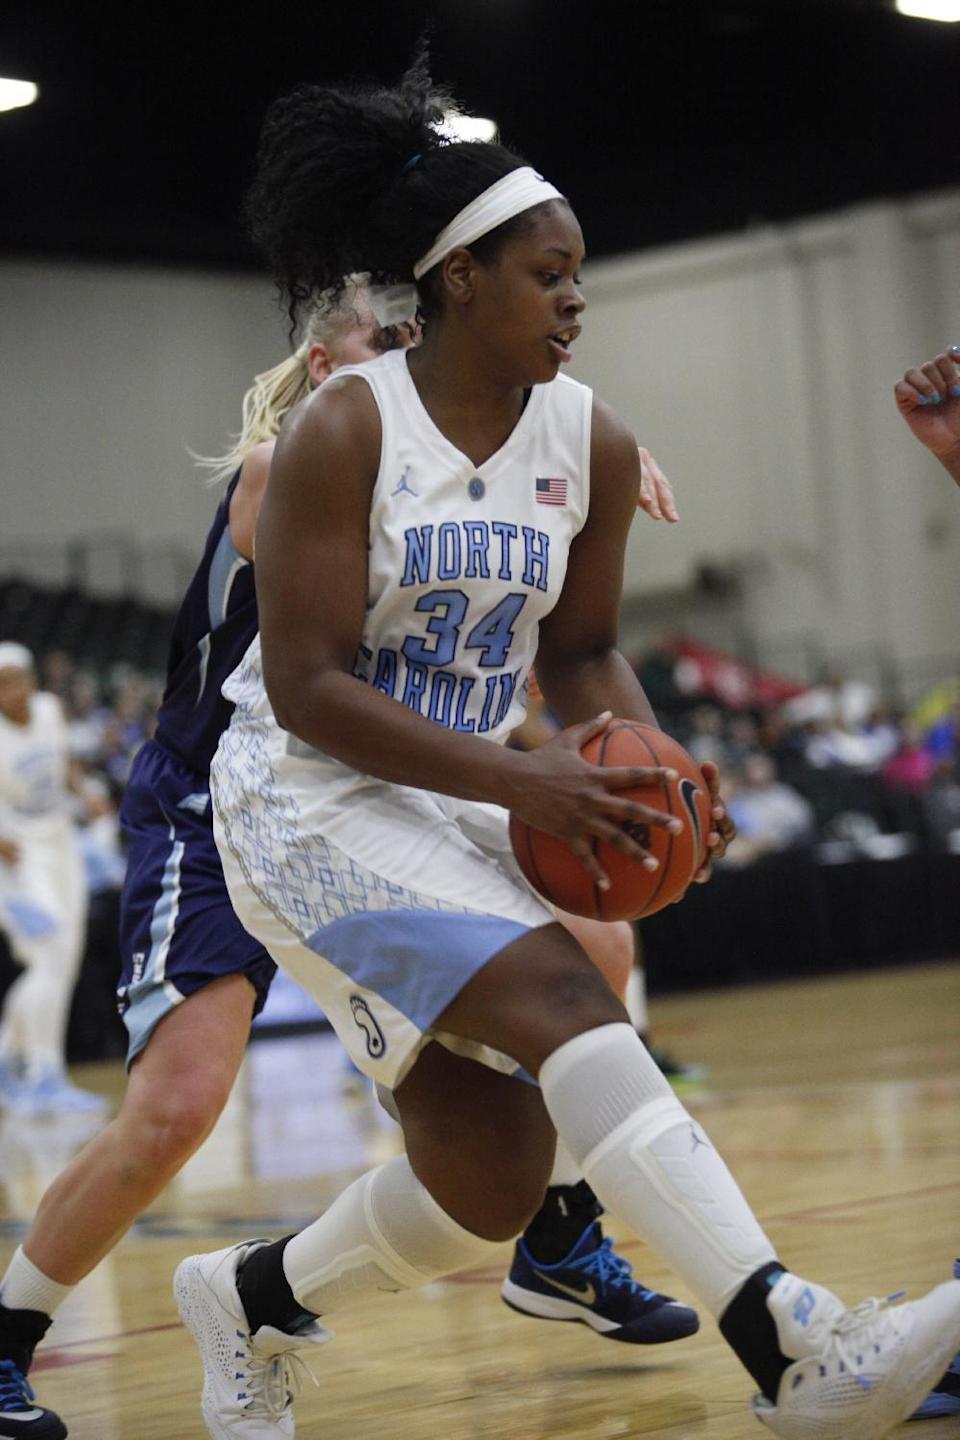 North Carolina's Xylina McDaniel (34) grabs a rebound against Maine during the first half of an NCAA college basketball game, Friday, Dec. 19, 2014 in Myrtle Beach, S.C. (AP Photo/Randall Hill)